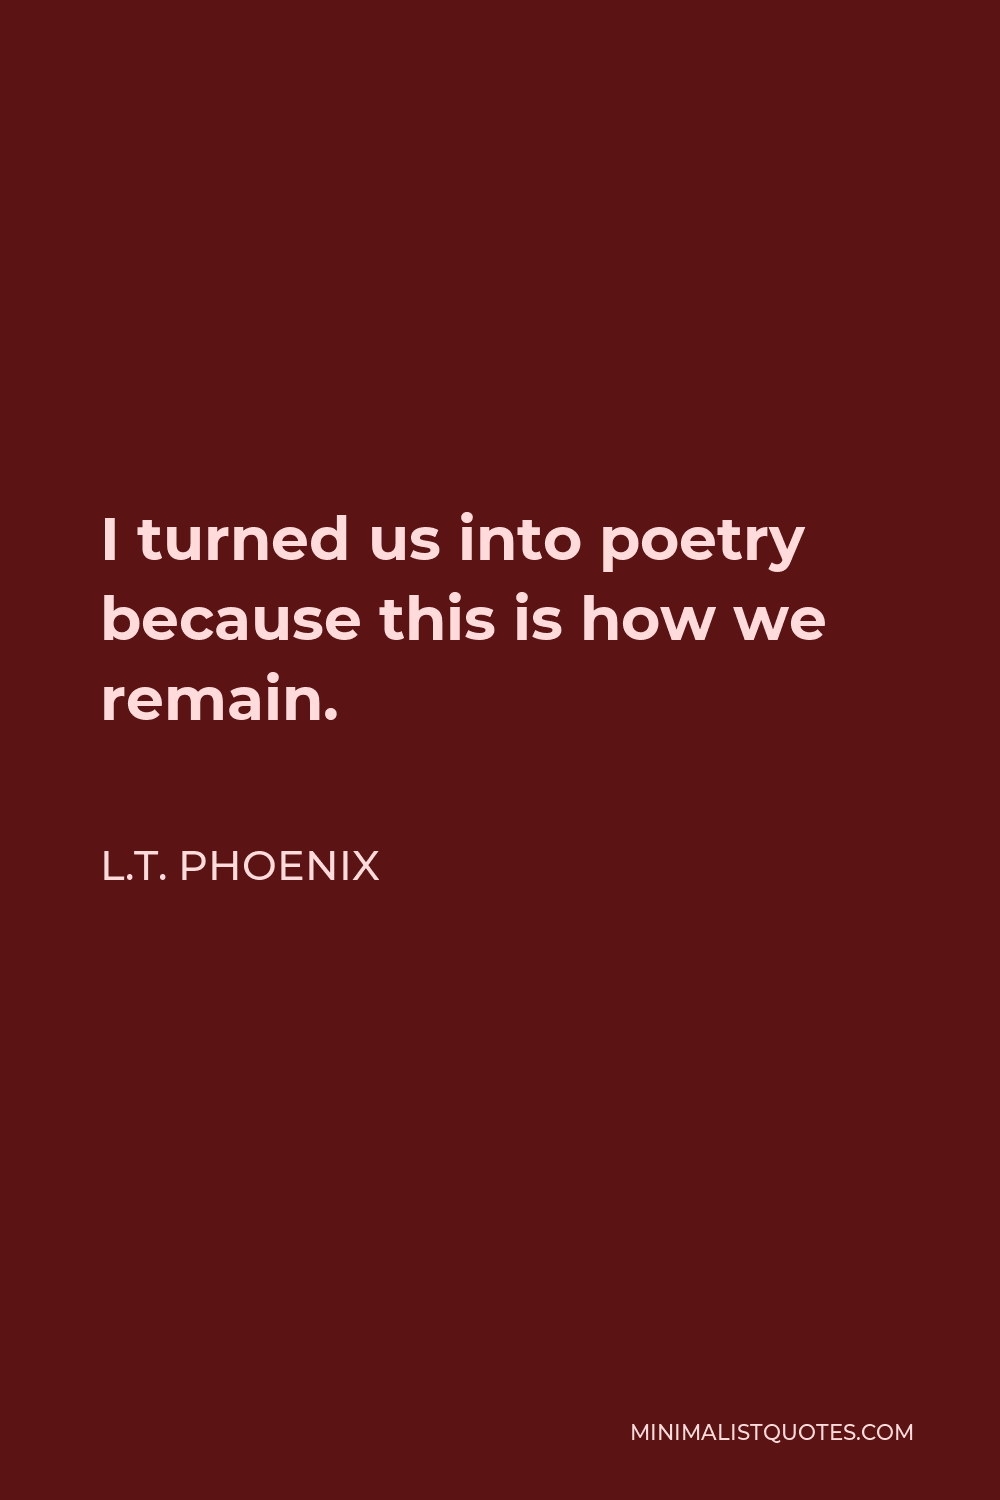 L.T. Phoenix Quote - I turned us into poetry because this is how we remain.